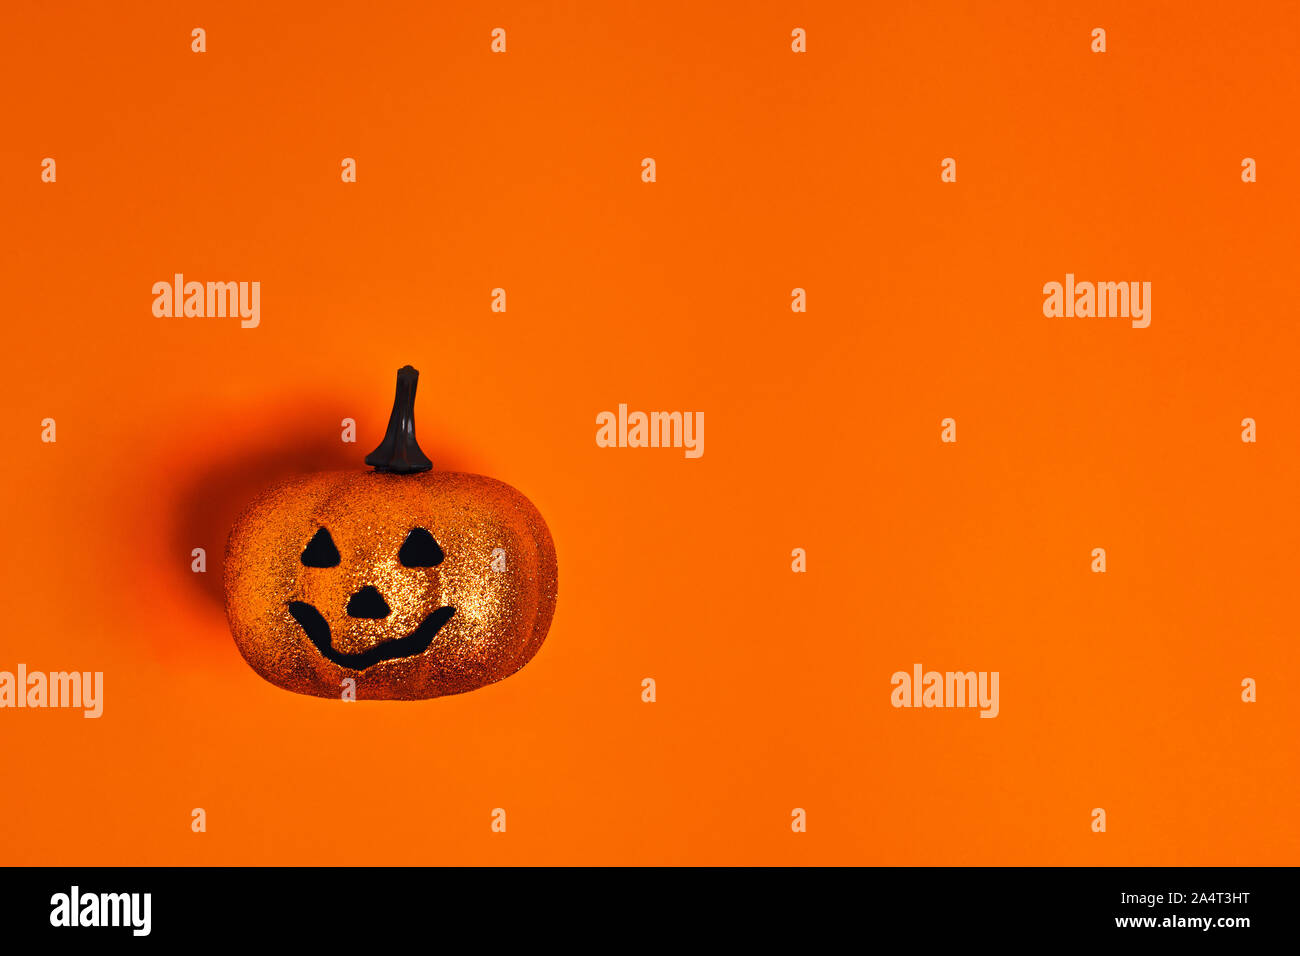 Halloween decoration concept - orange background with decorative pumpkin. Flat lay, top view. Place for your text. Stock Photo